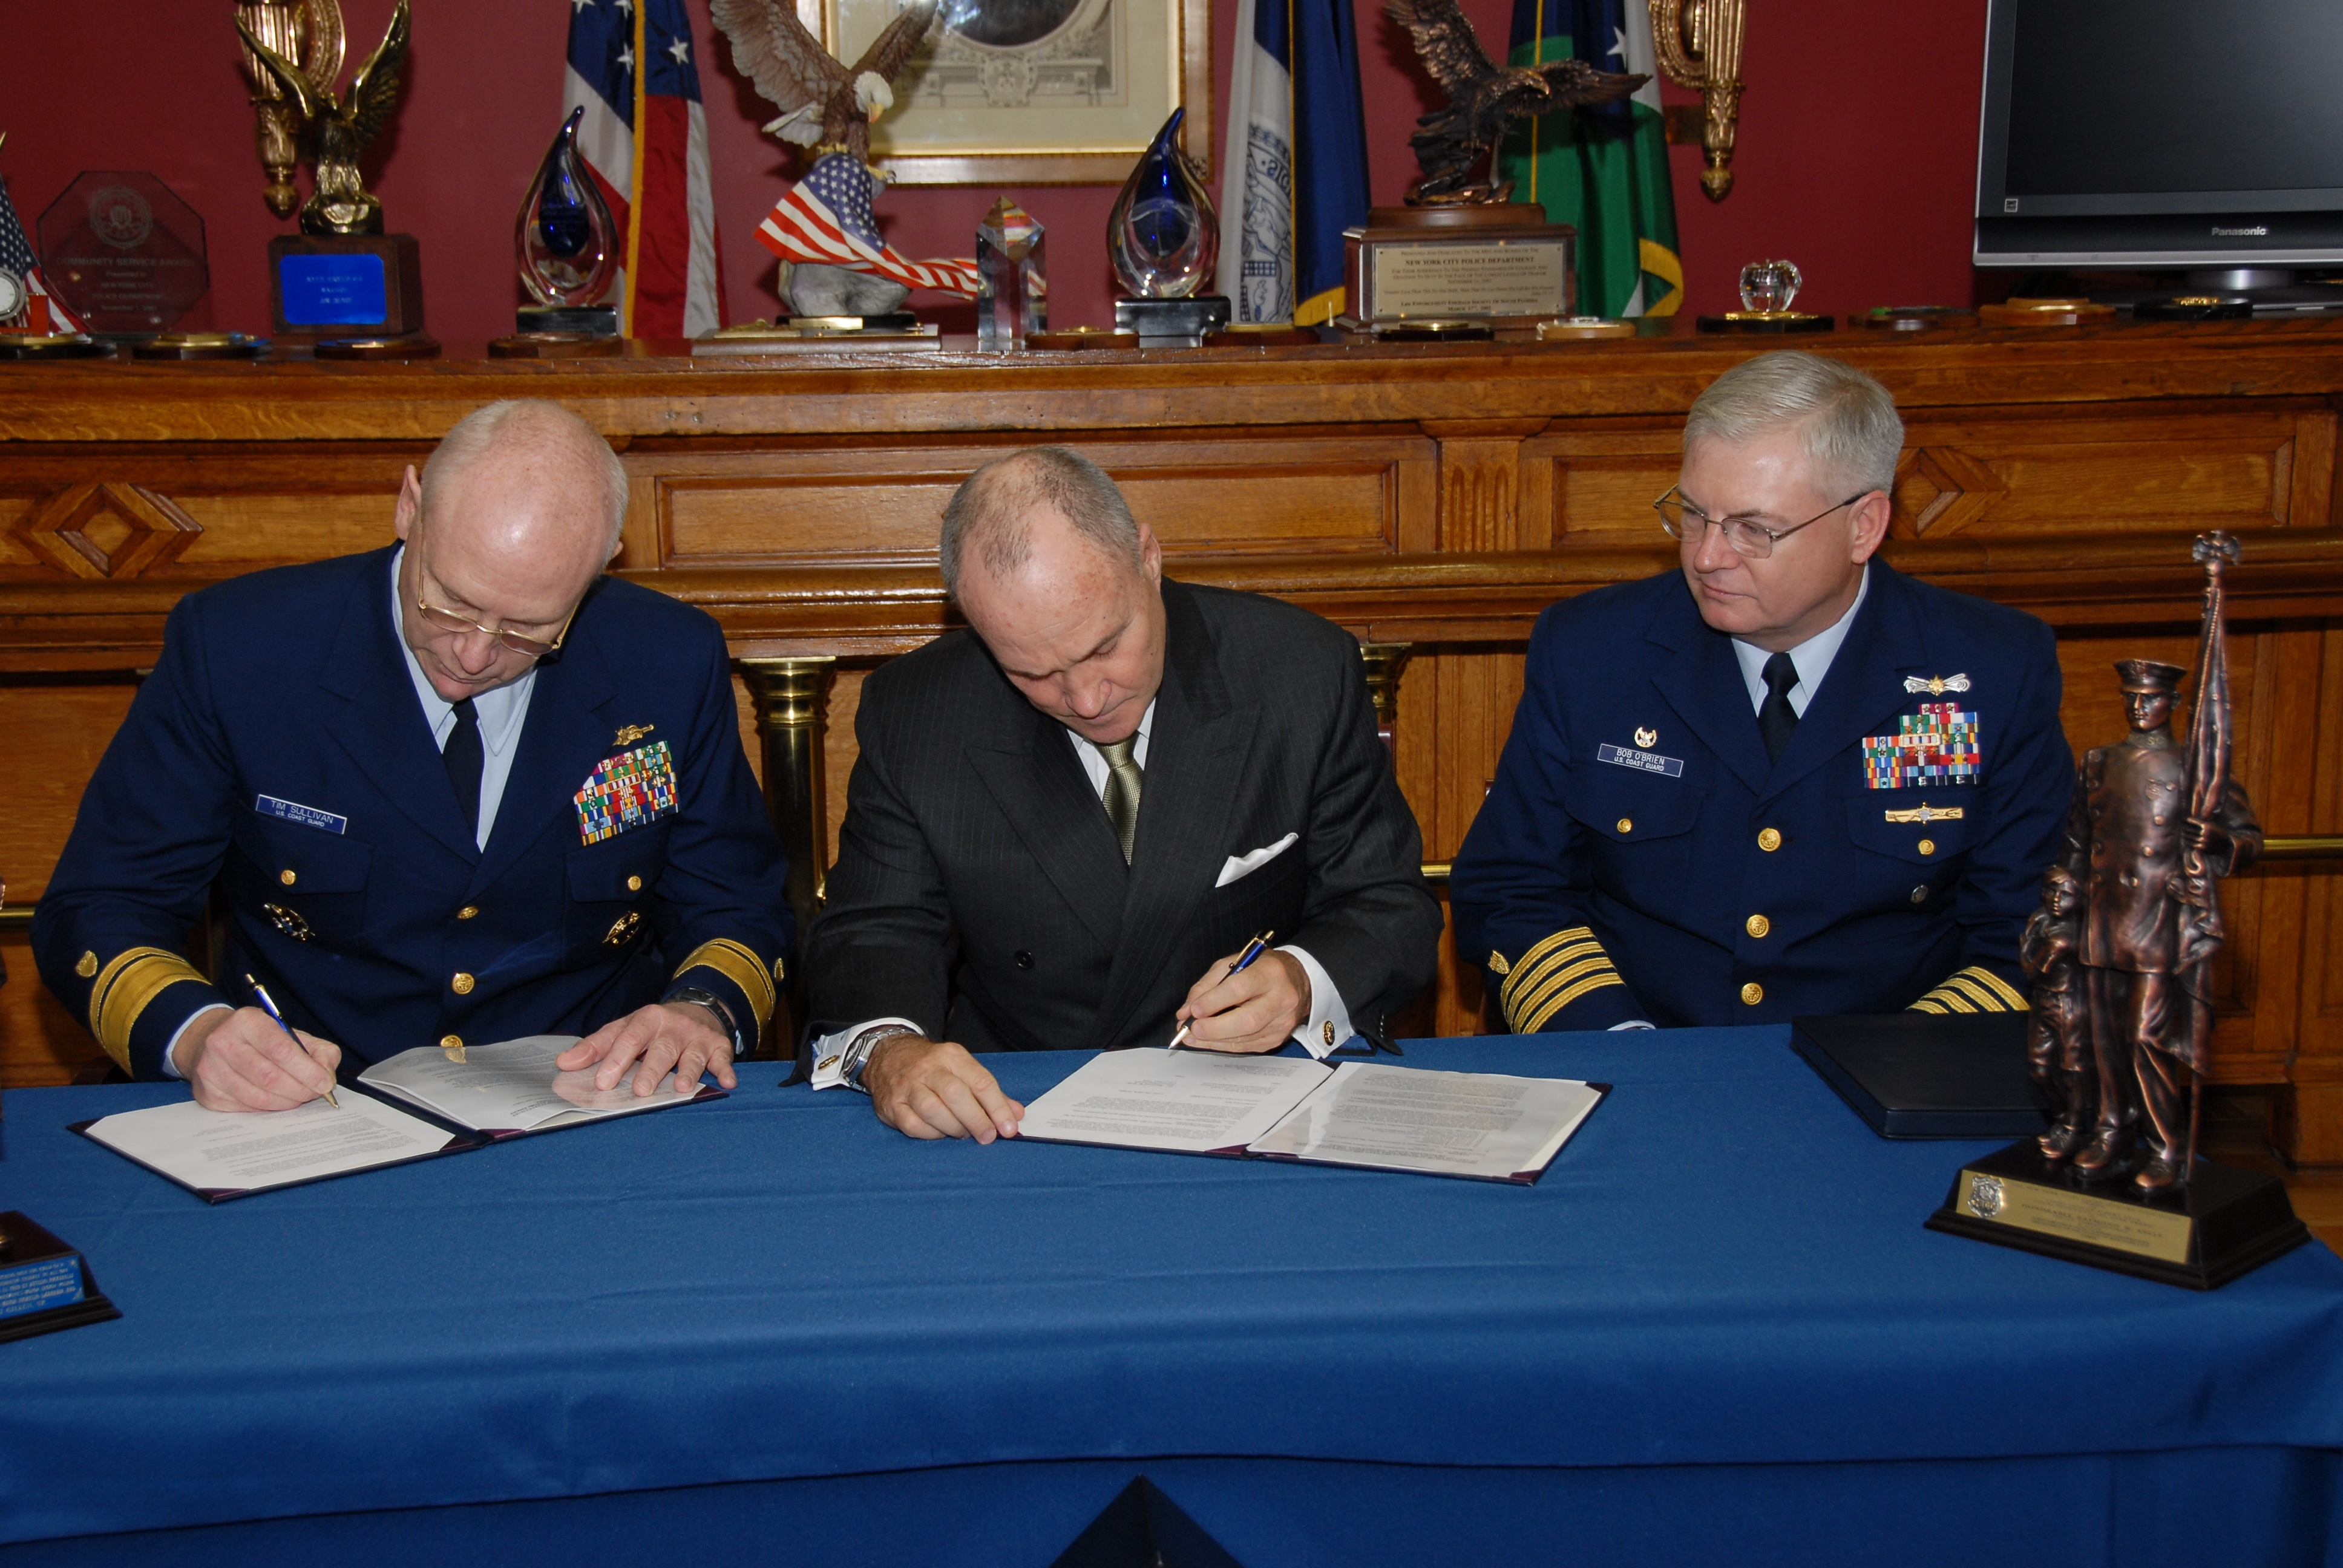 Photo u s coast guard rear admiral timothy s sullivan new york city police commissioner raymond w kelly and u s coast guard captain robert r o brien